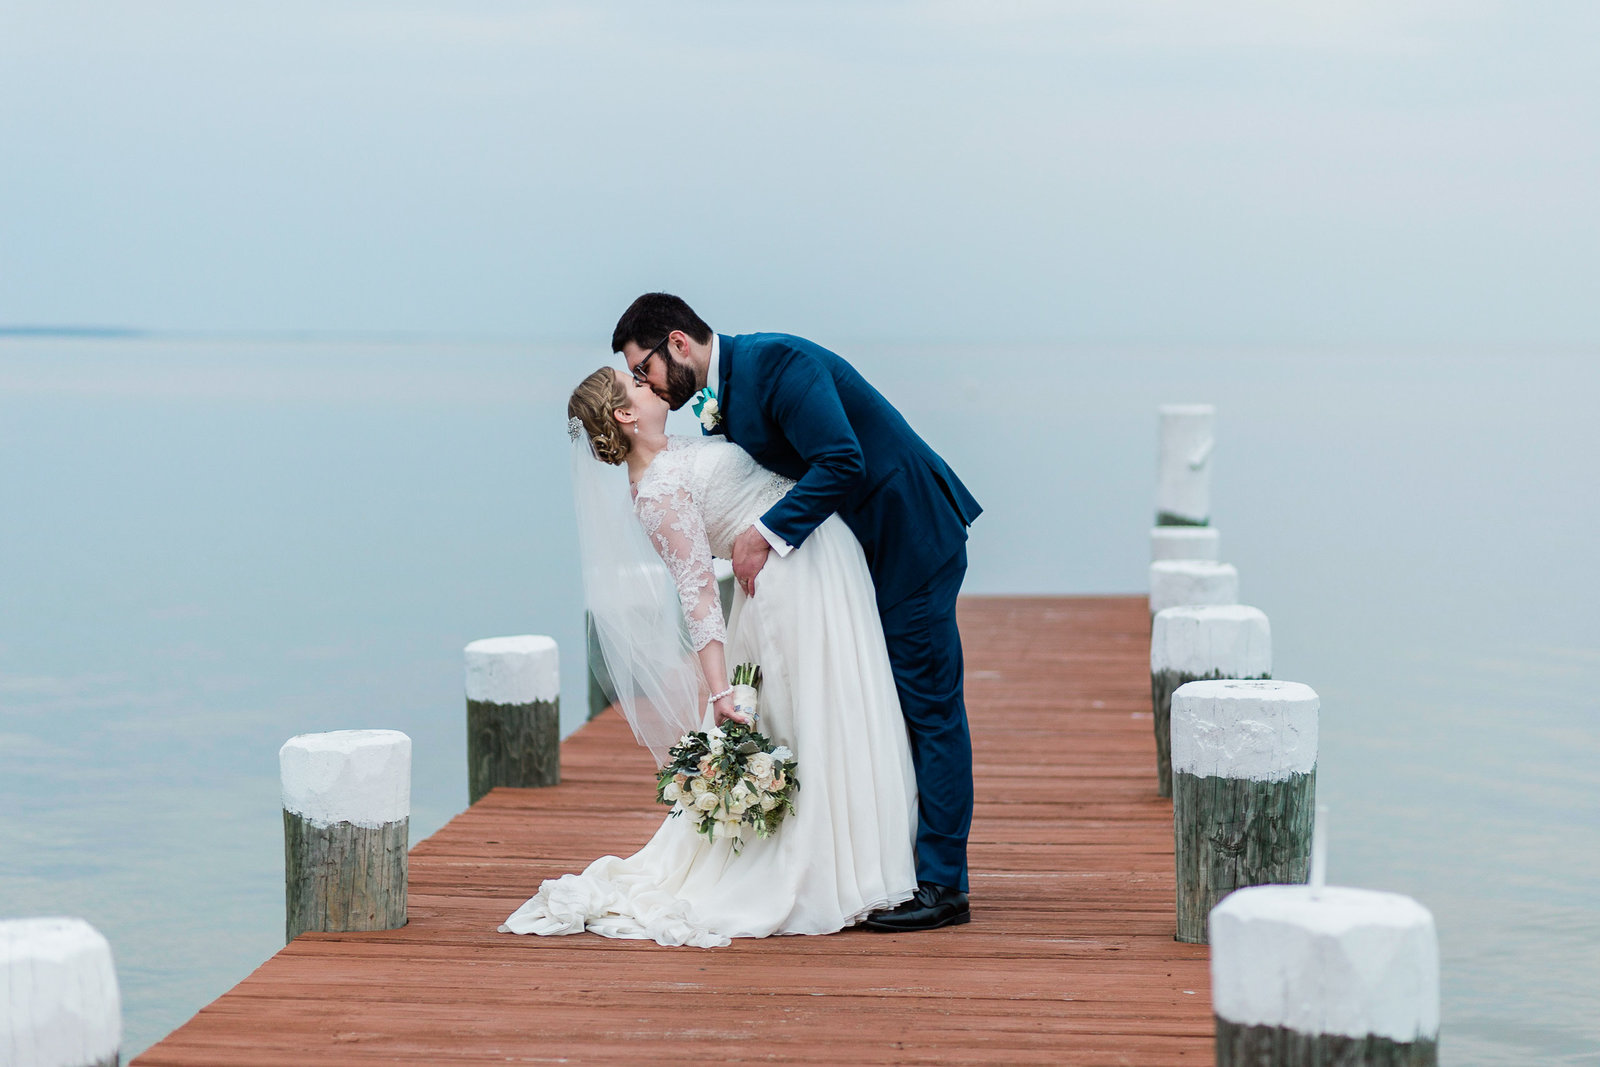 Groom dips bride for a kiss on a dock, overlooking the ocean. Celebrations at the Bay MD